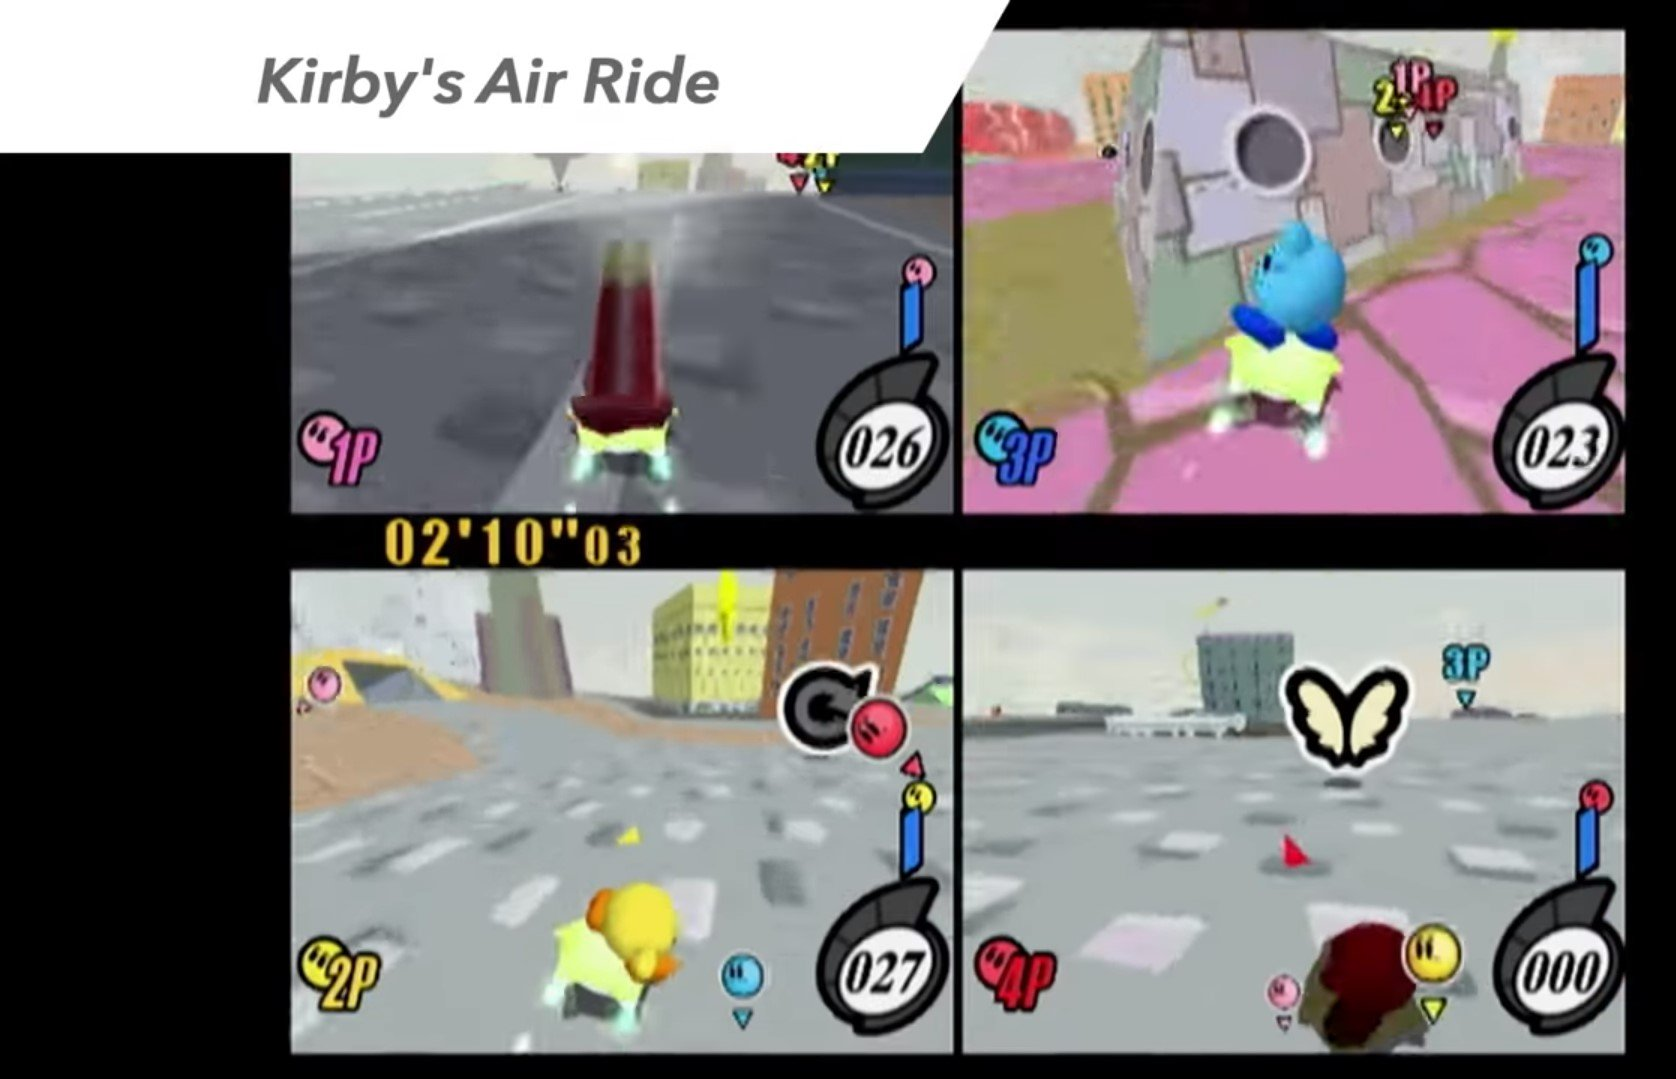 City Trial screenshot, from the Smash Run demonstration for Smash Bros 3DS